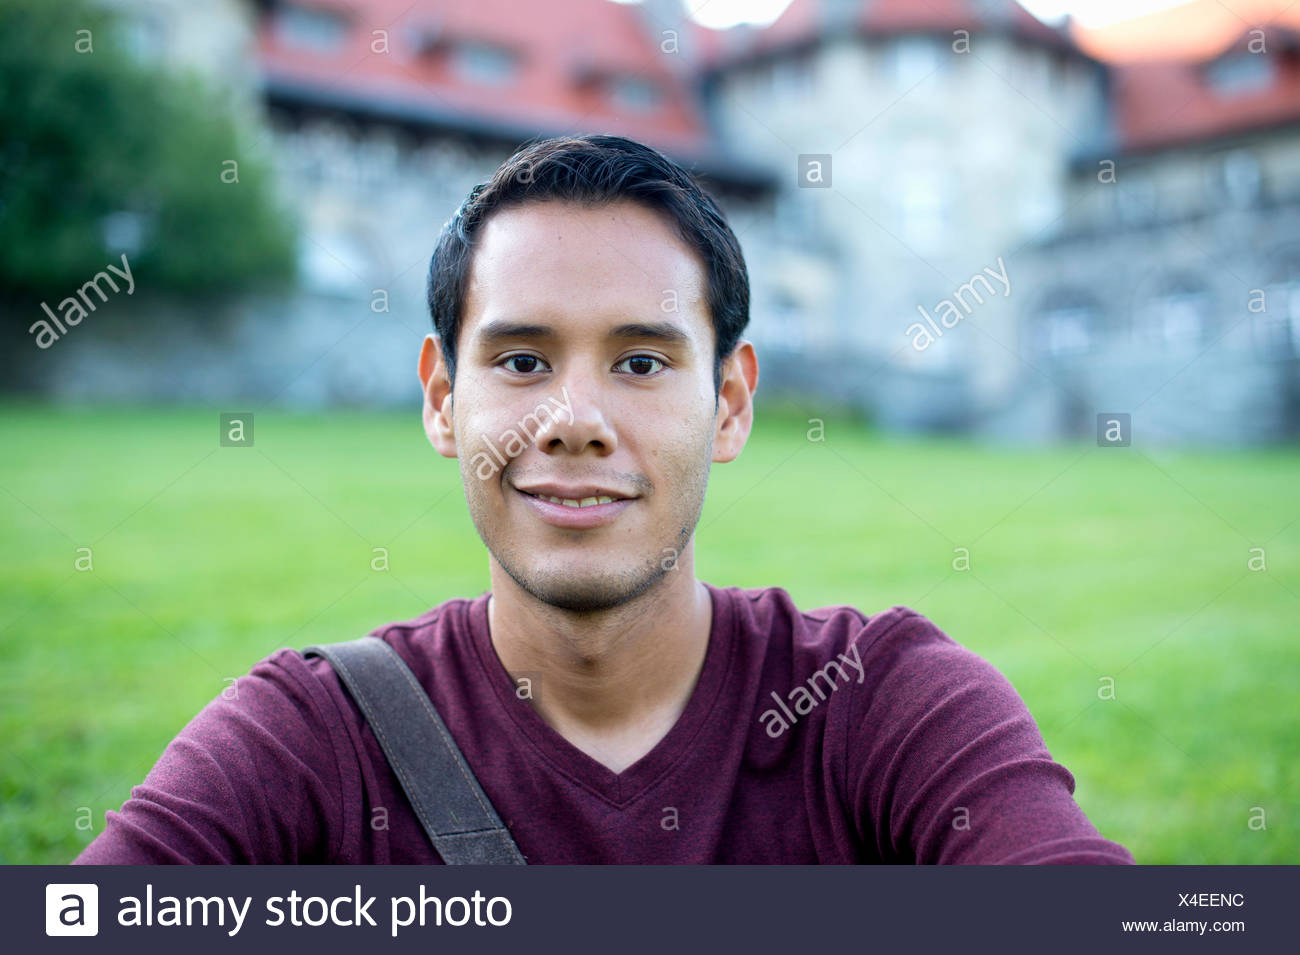 Head and shoulders portrait of a young man Photo Stock